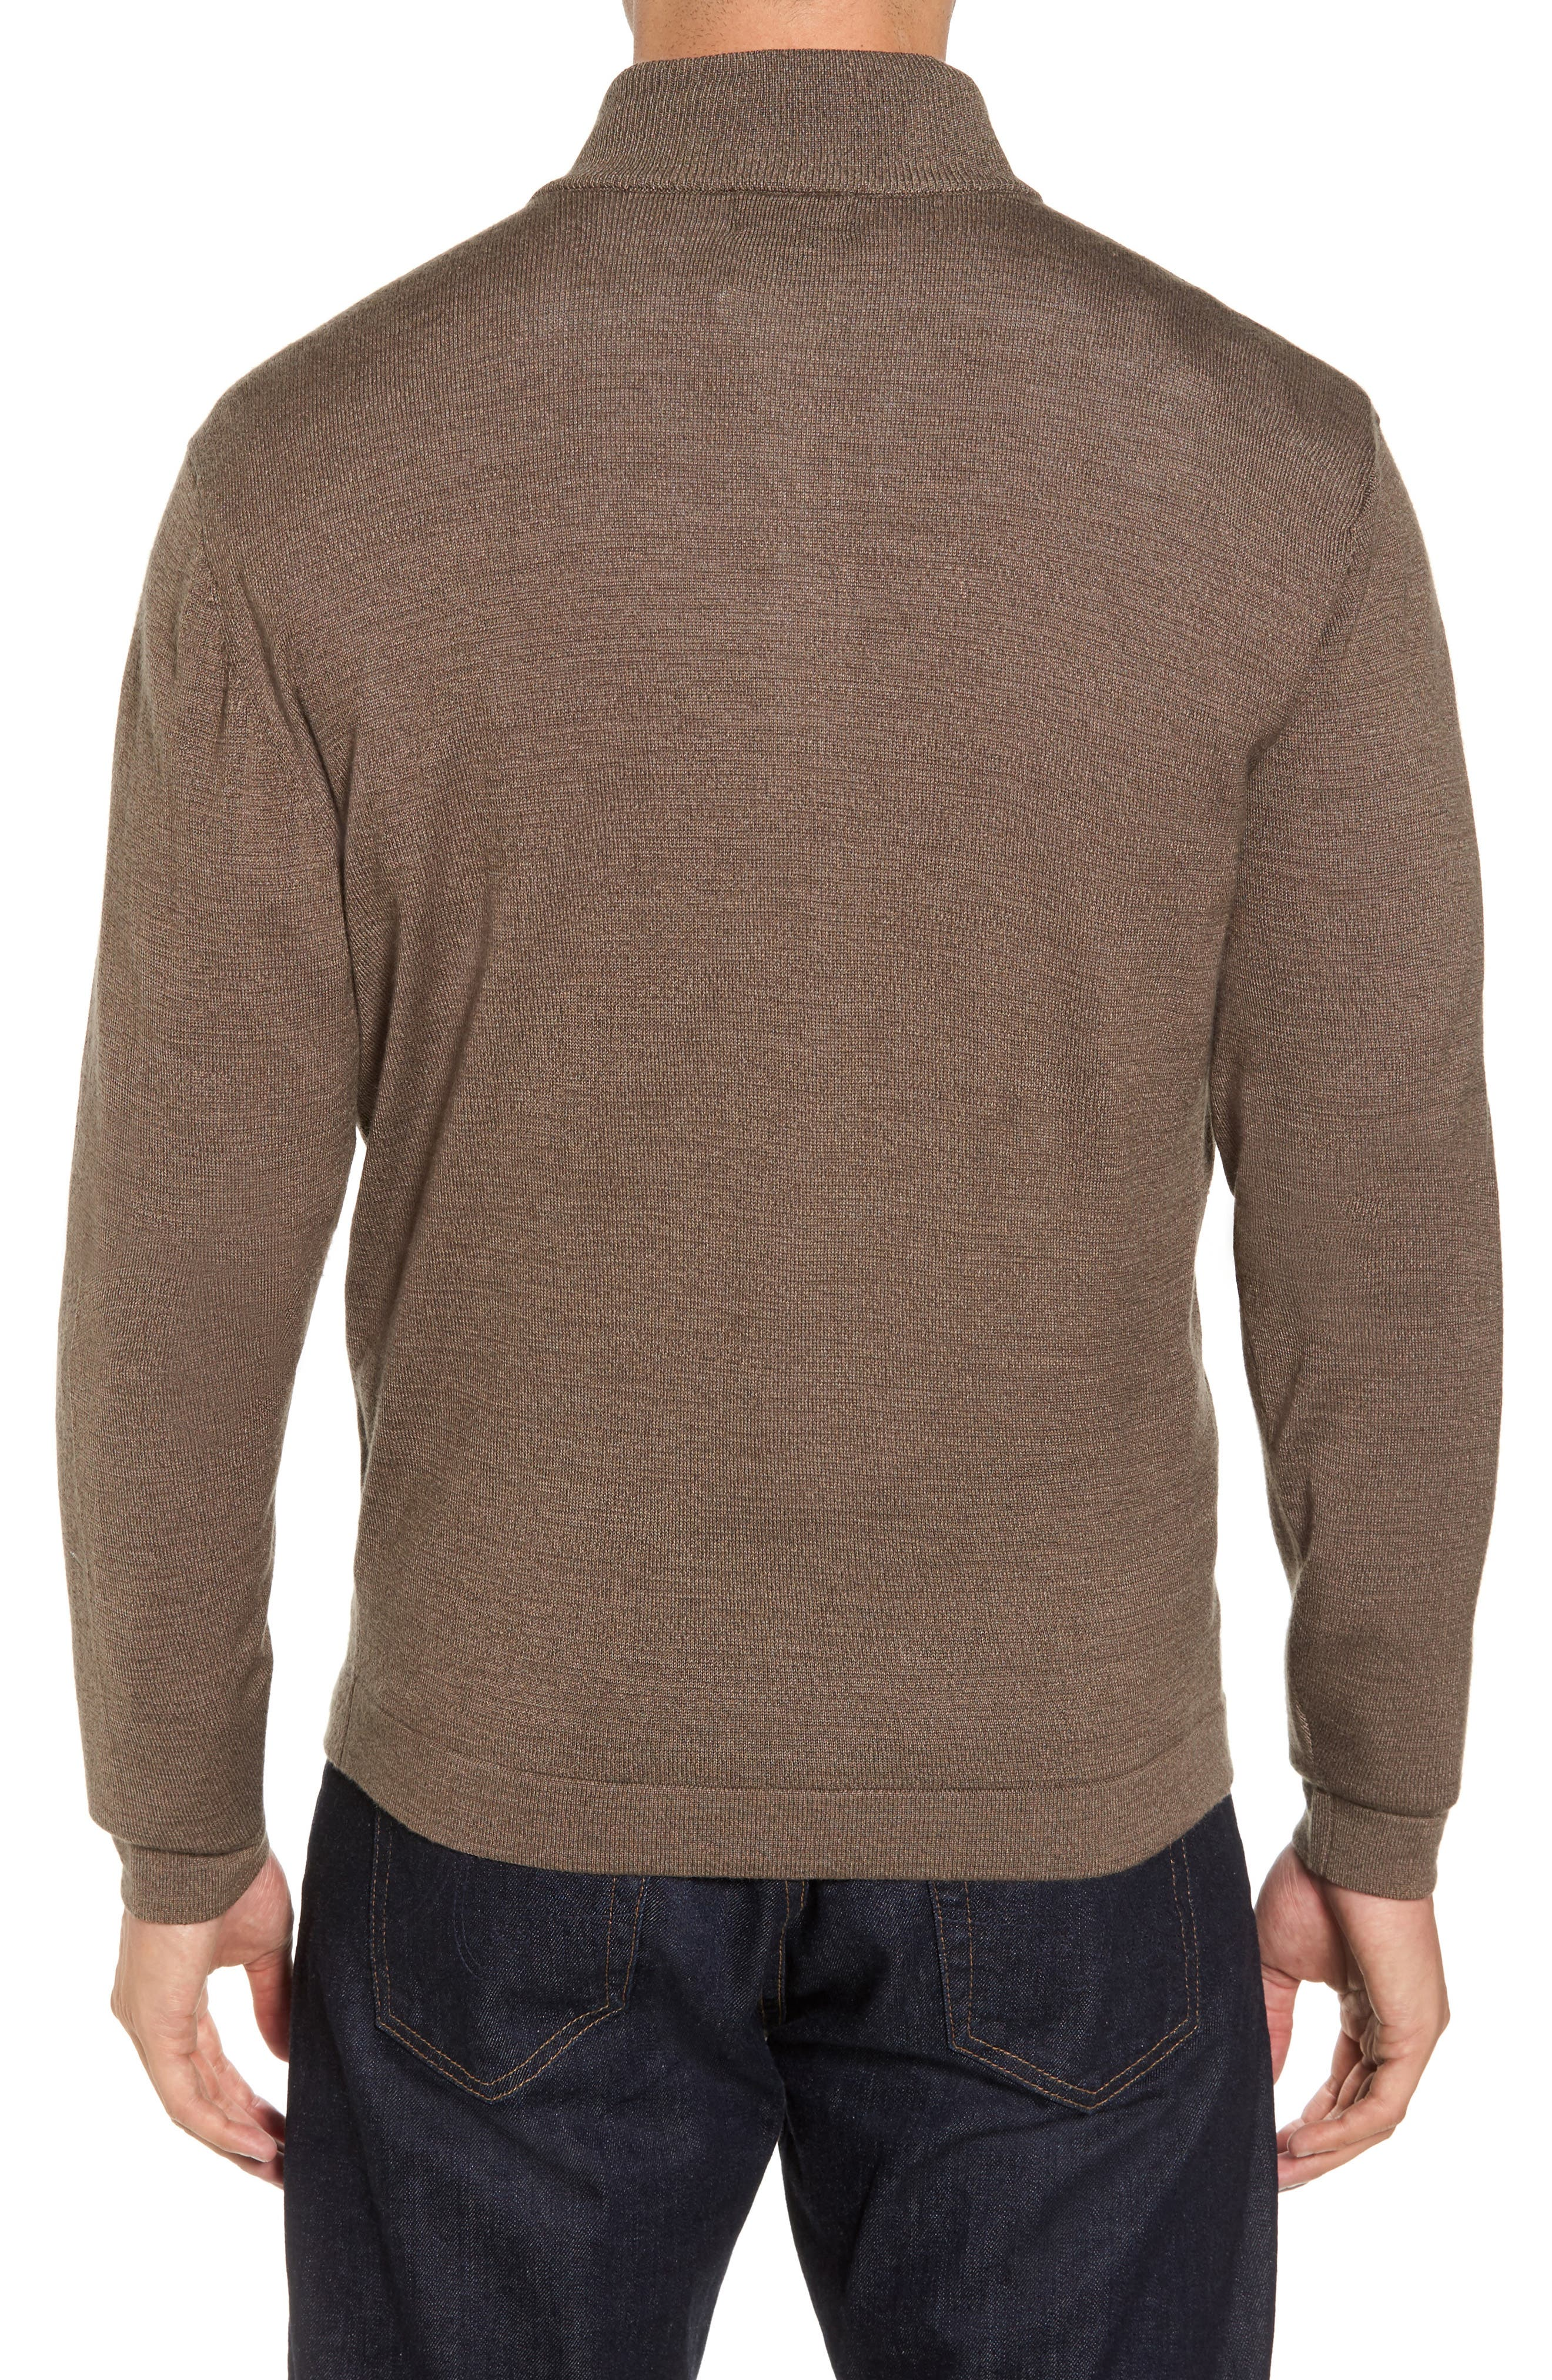 Henry Quarter-Zip Pullover Sweater,                             Alternate thumbnail 2, color,                             Twig